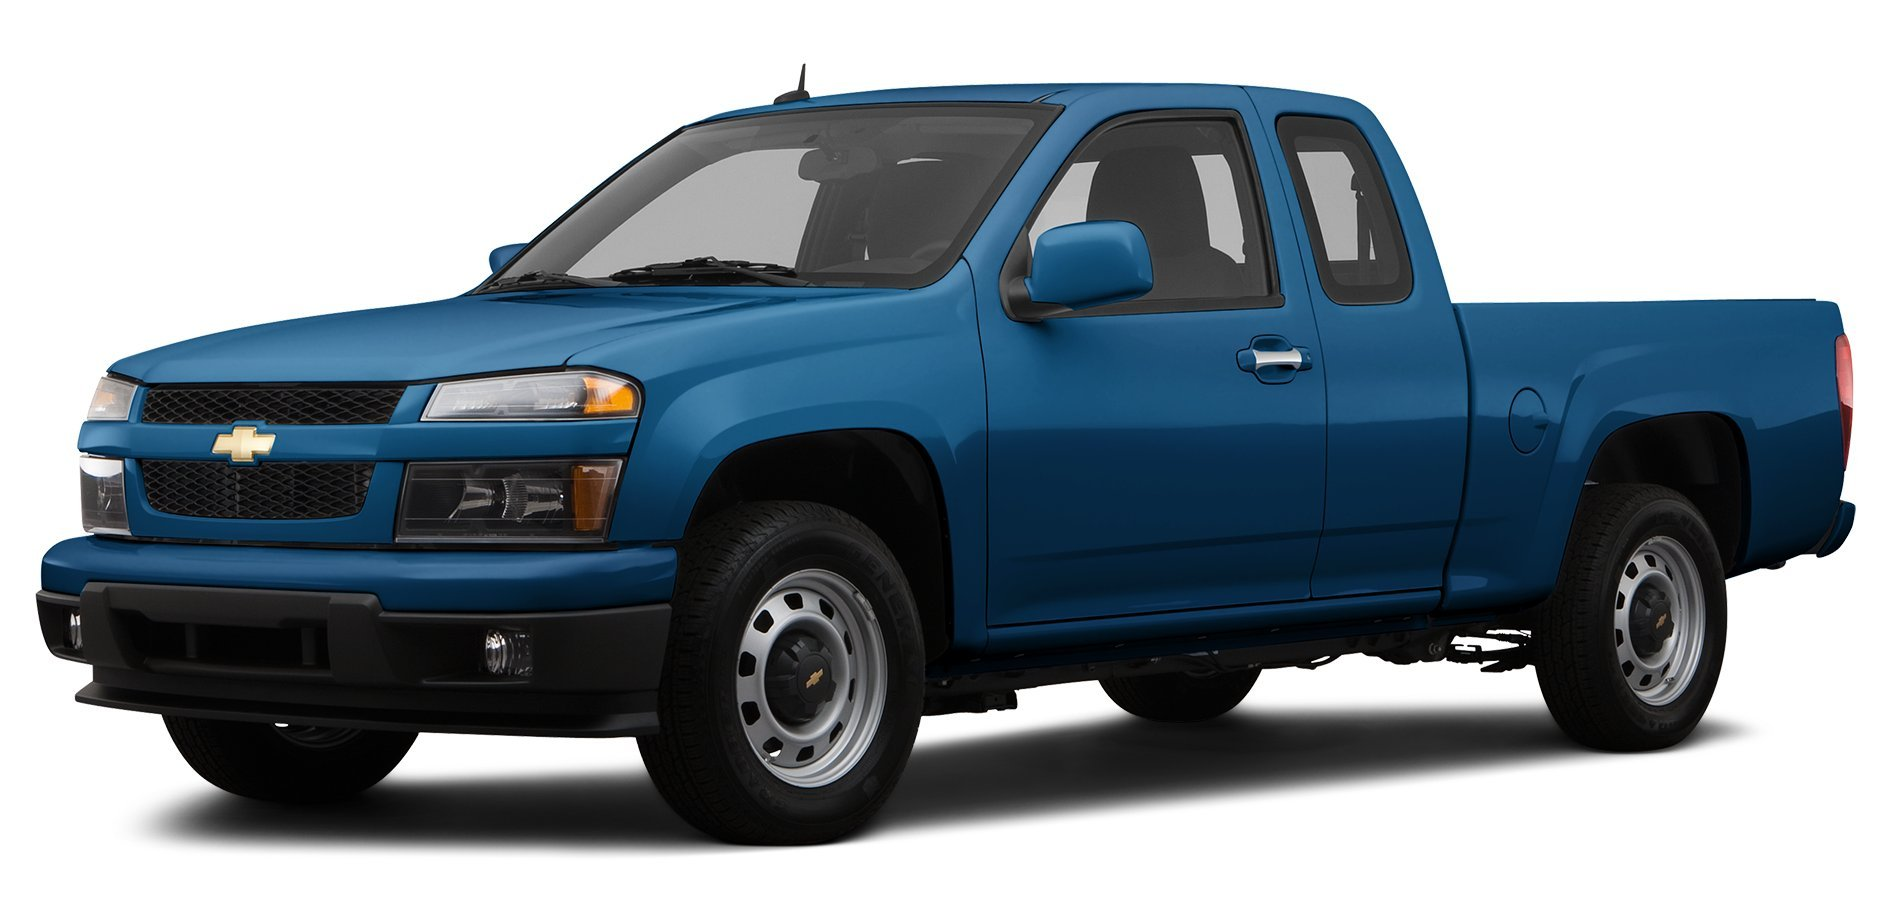 2012 Suzuki Equator Reviews Images And Specs Vehicles Chevy Colorado I4 Engine Diagram Manual Transmission Chevrolet Work Truck 2 Wheel Drive Extended Cab